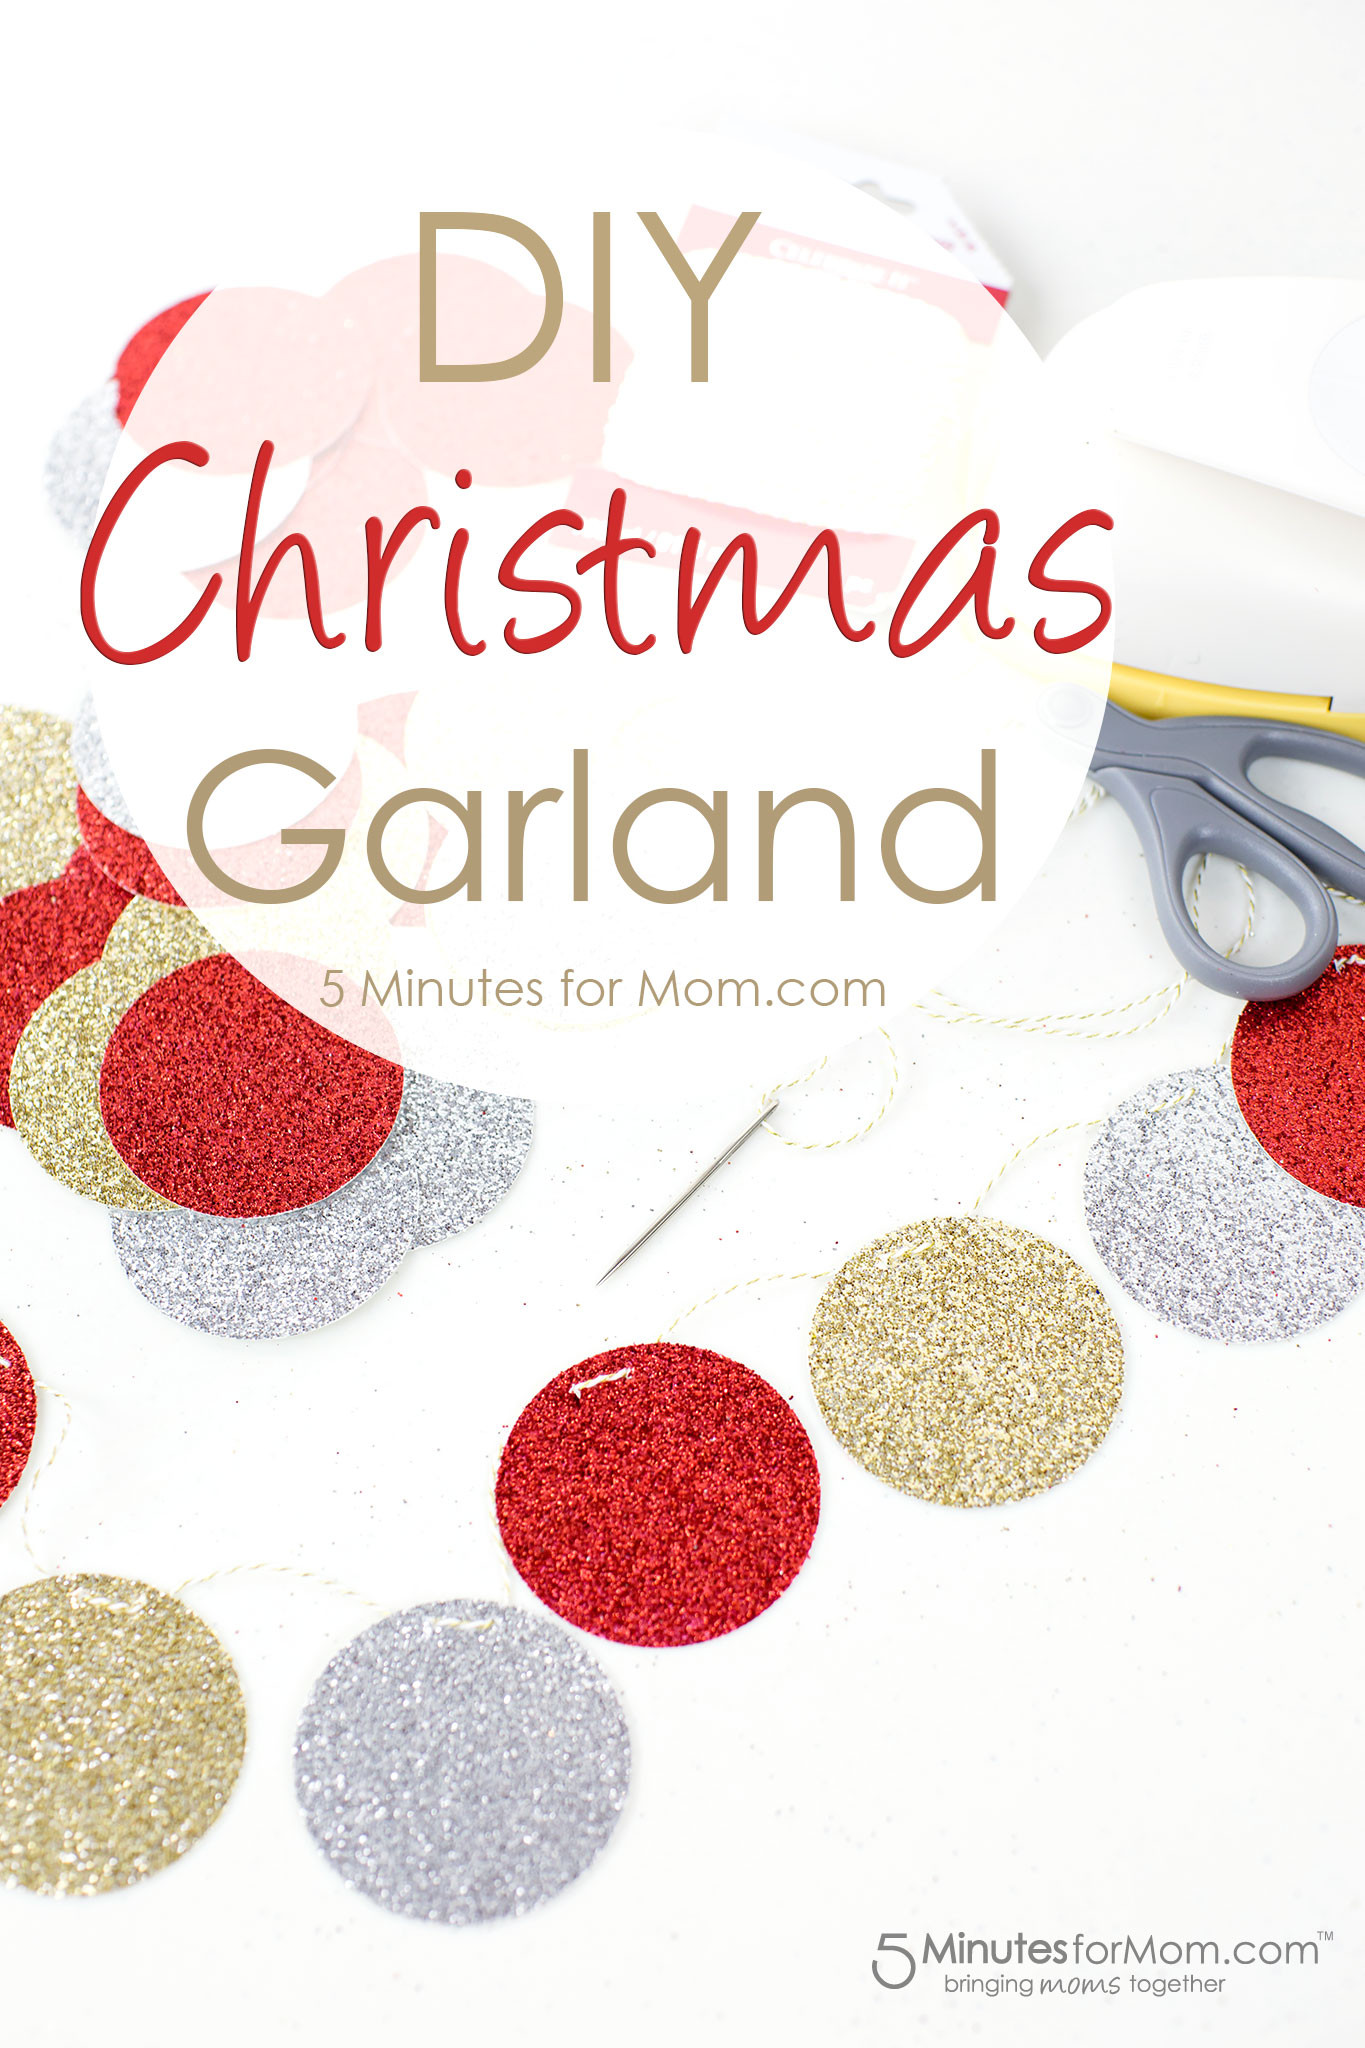 Best ideas about DIY Garland Christmas . Save or Pin Easy DIY Christmas Garland 5 Minutes for Mom Now.